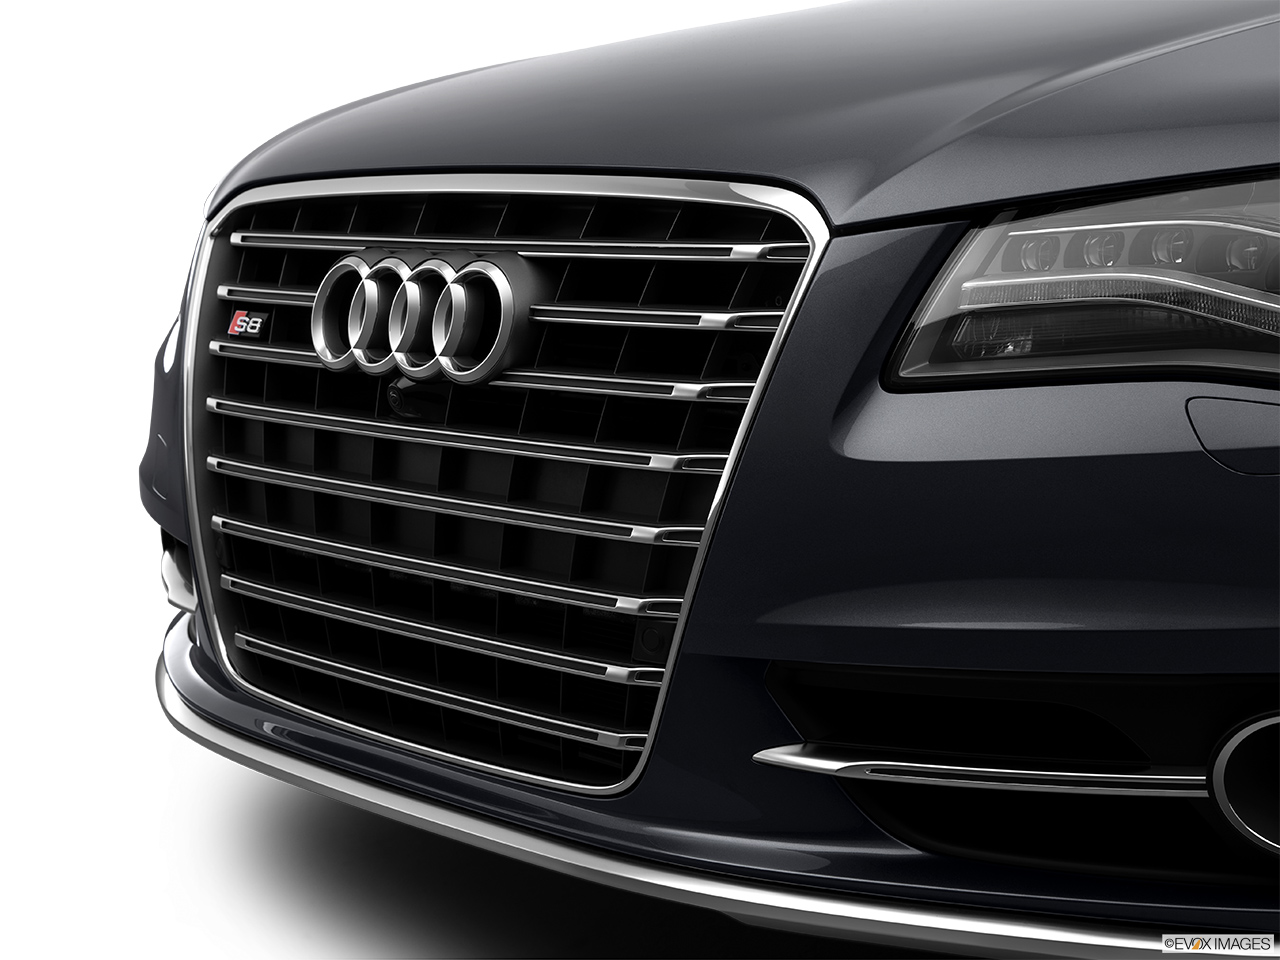 2014 Audi S8 4.0 TFSI Close up of Grill.